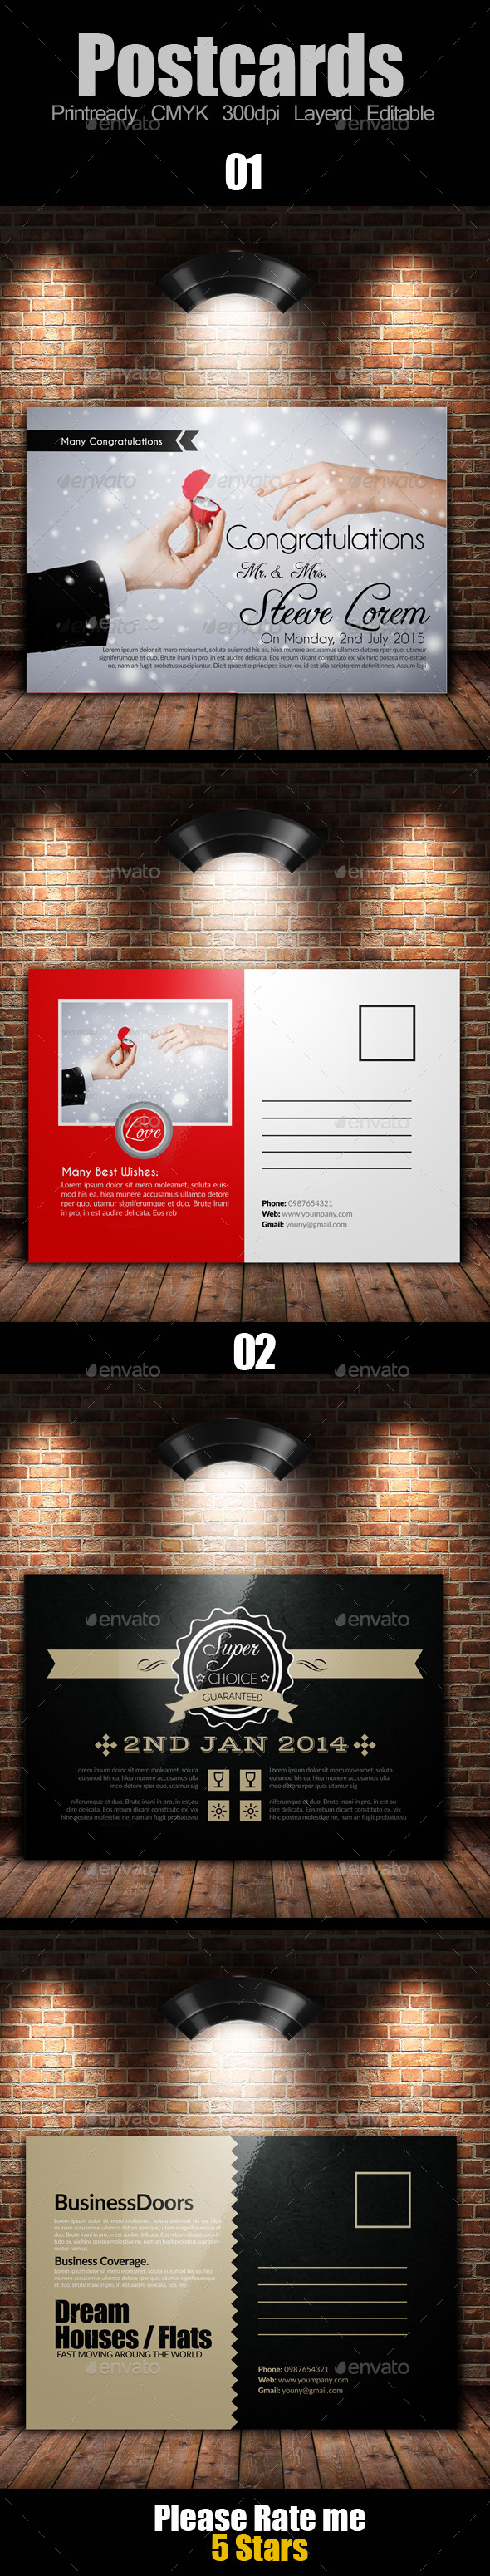 Multi Use Business Post Cards Bundle - Cards & Invites Print Templates